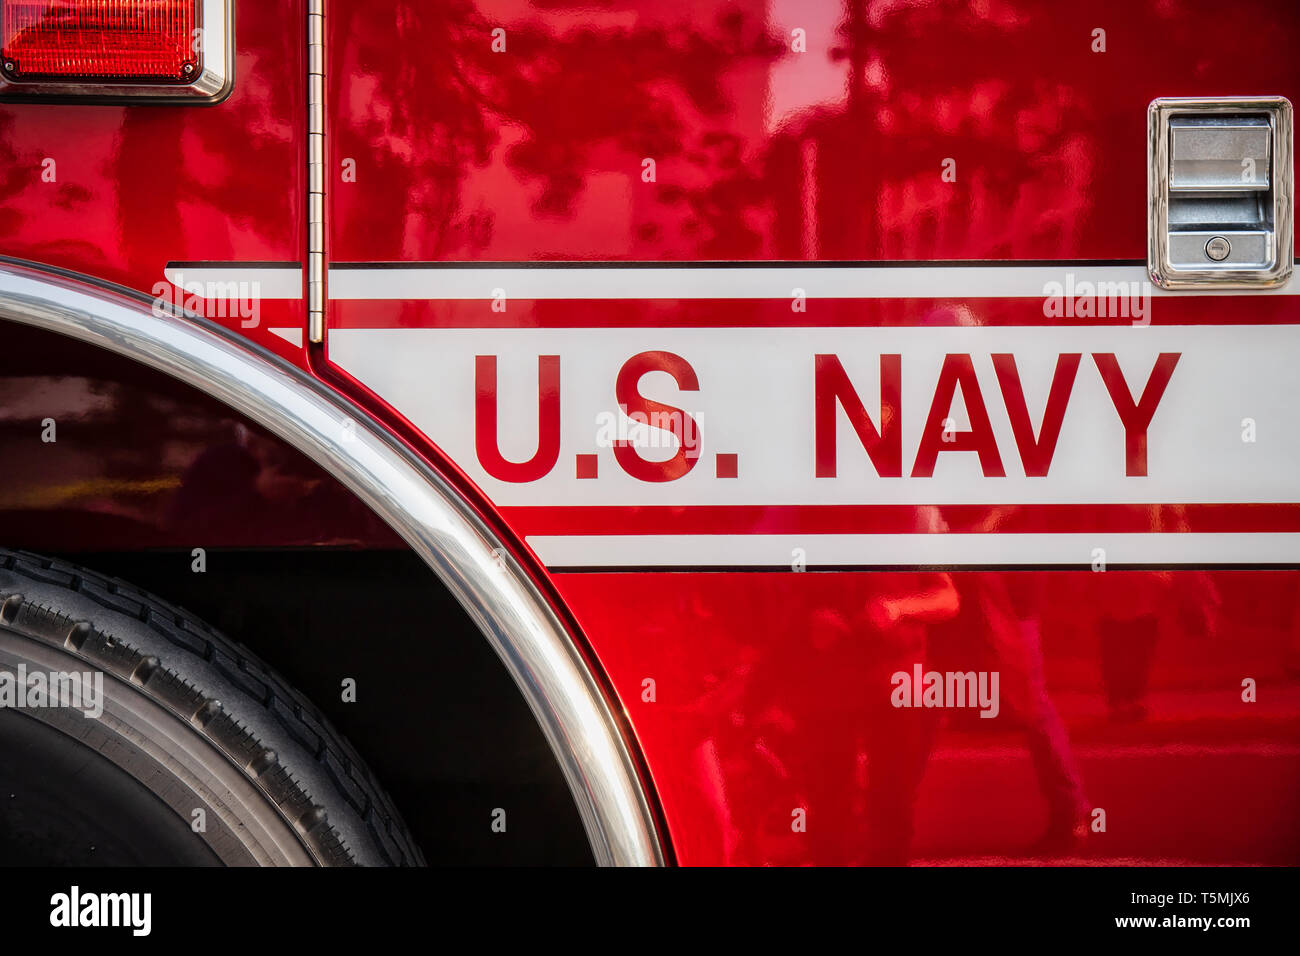 A crowd reflects on the door of a US Navy fire truck on display at Naval Base Yokosuka. Stock Photo